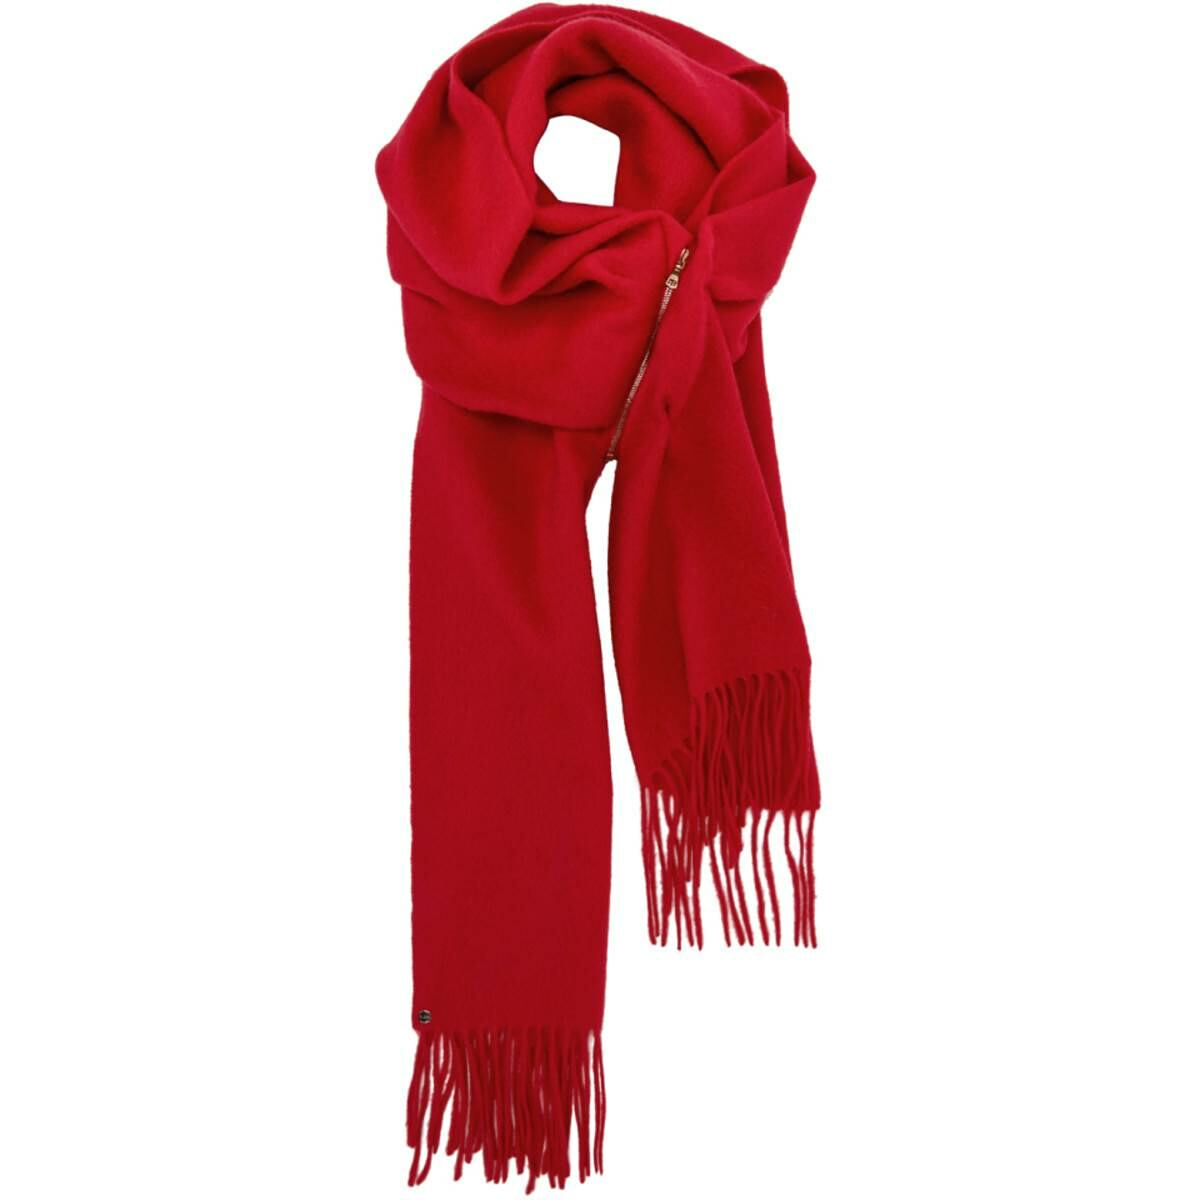 Bless Red Cashmere Zip Scarf Ssense USA WOMEN Women FASHION Womens KNITWEAR